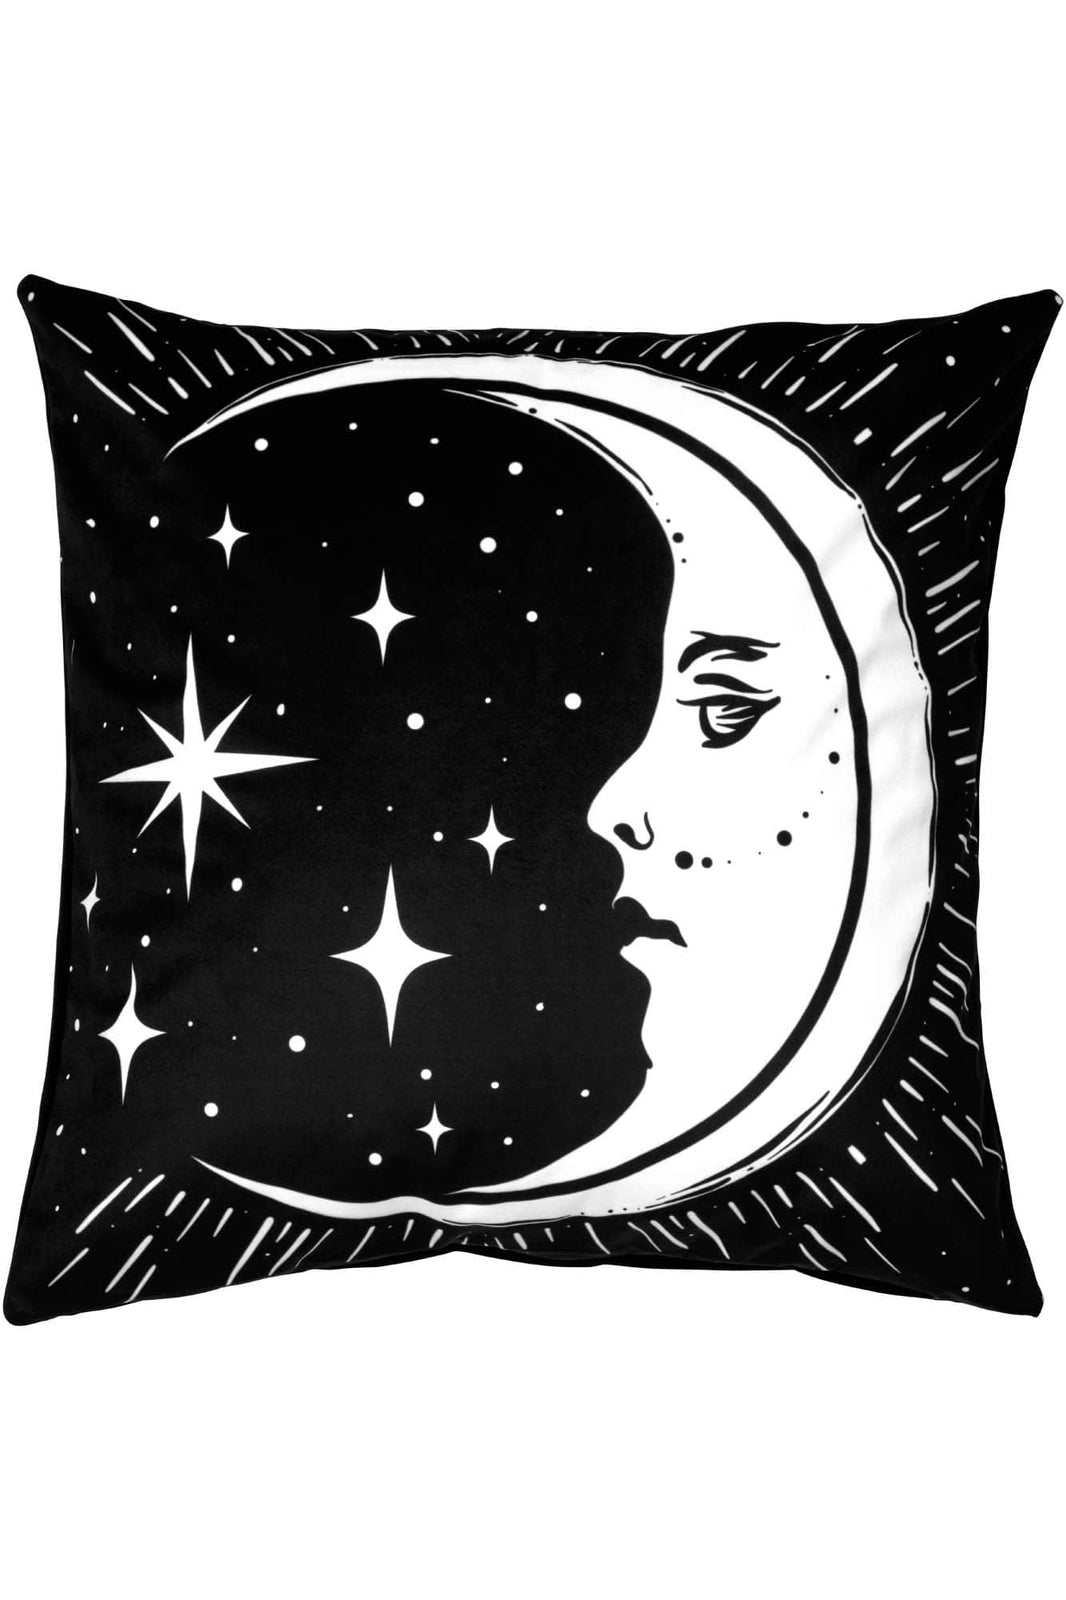 Vintage Moon Cushion Cover